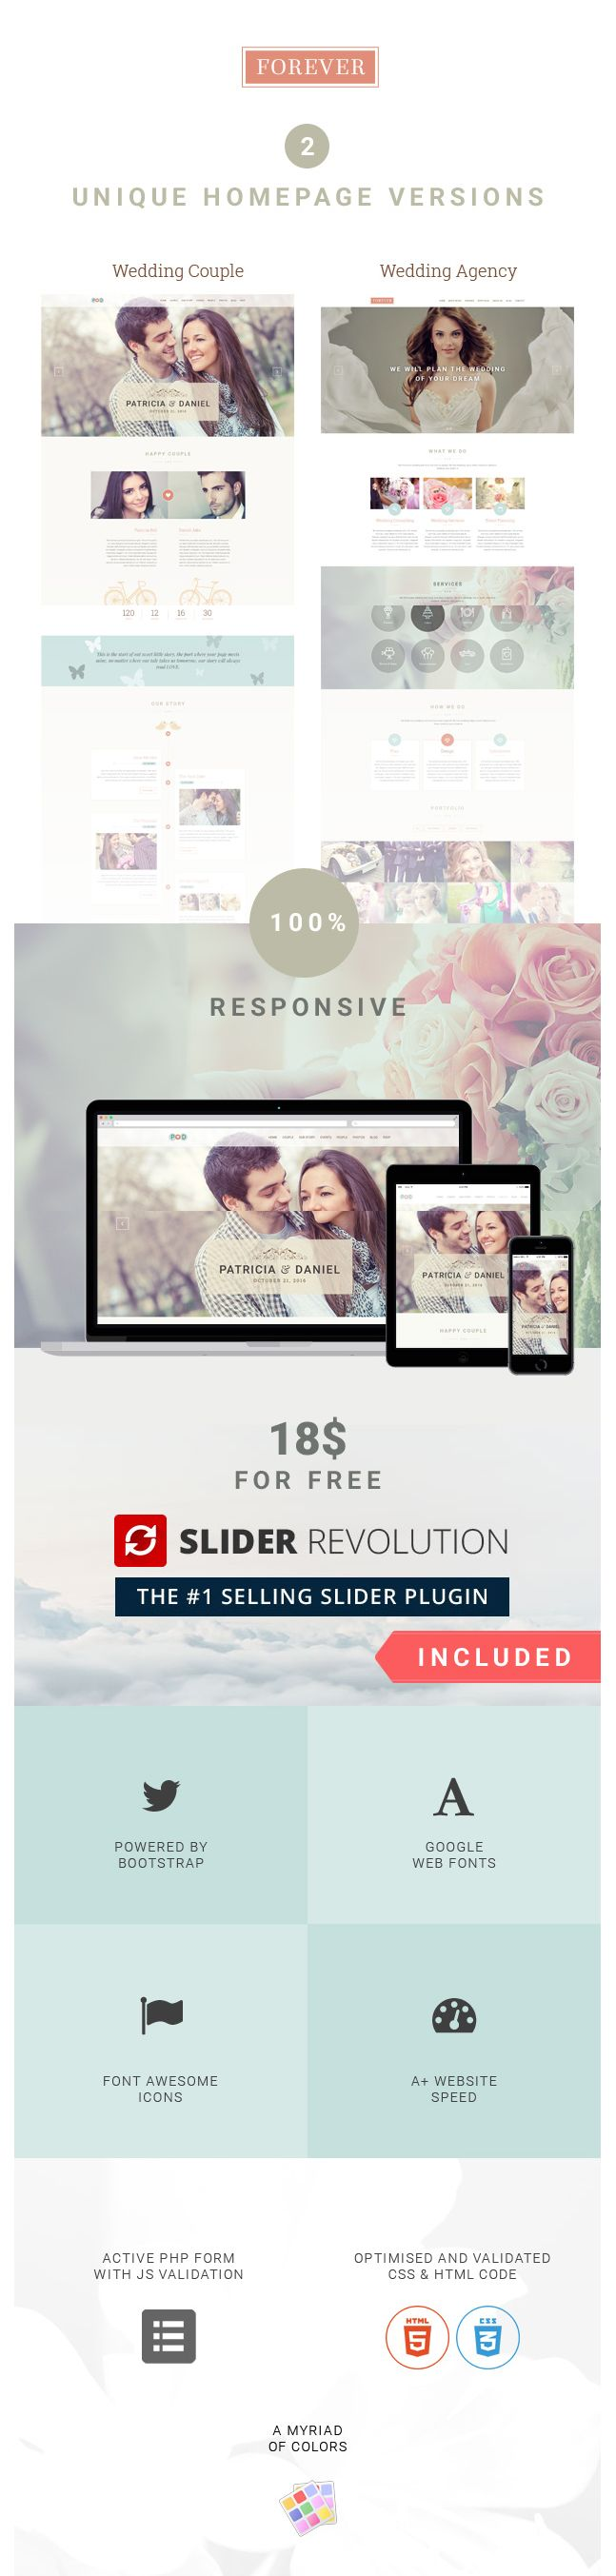 wedding invitation template themeforest%0A Forever responsive HTML  template ideally design for wedding planning  agencies also developed for event planners